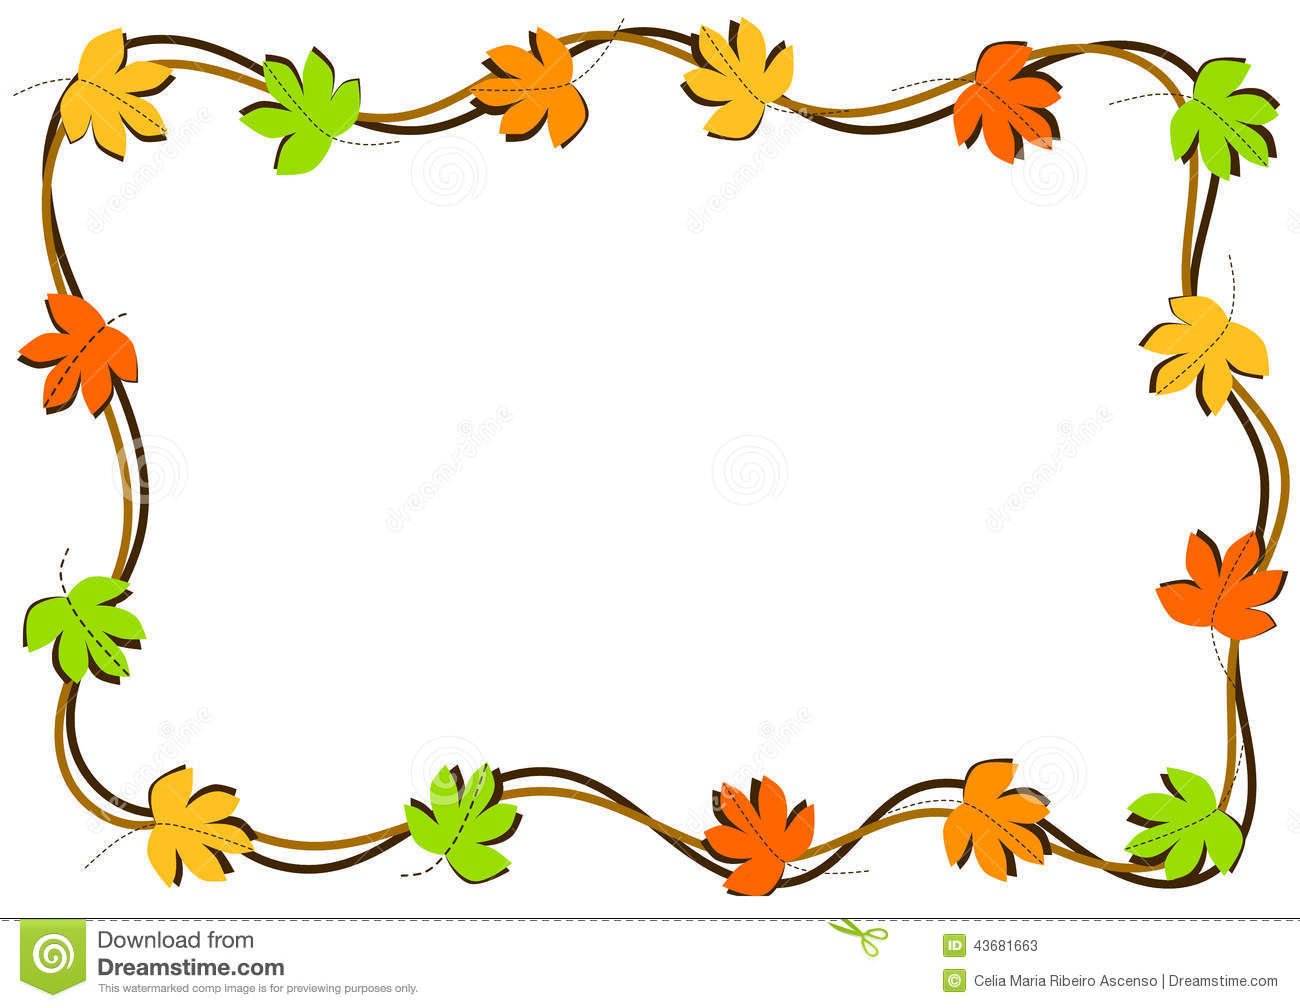 Fall Christian Wallpaper Autumn Leaves Border Frame Stock Illustration Image